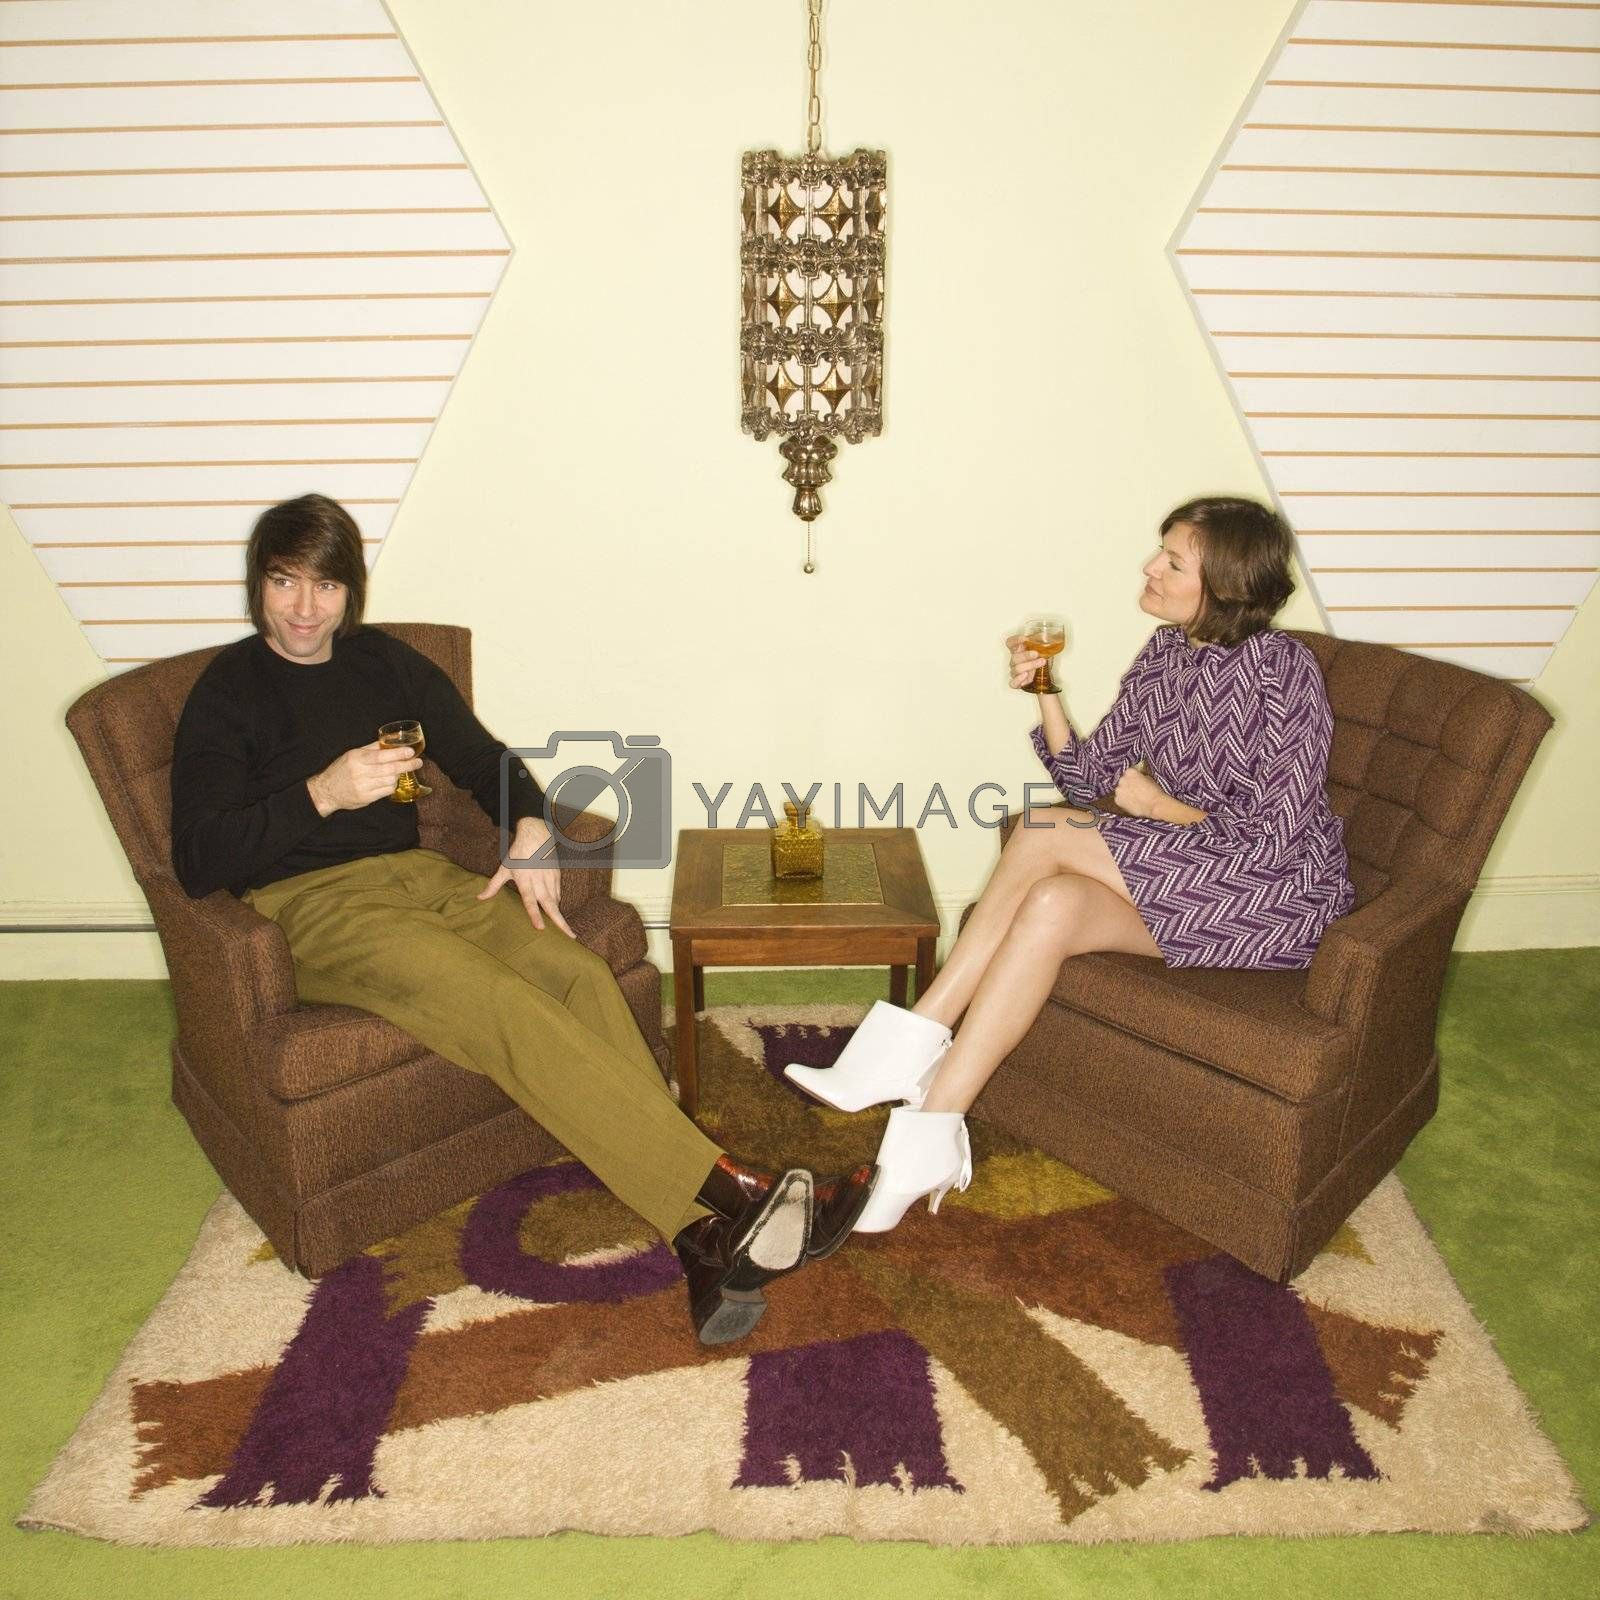 Caucasian mid-adult man and woman wearing vintage clothing seated in brown retro chairs smiling and drinking.